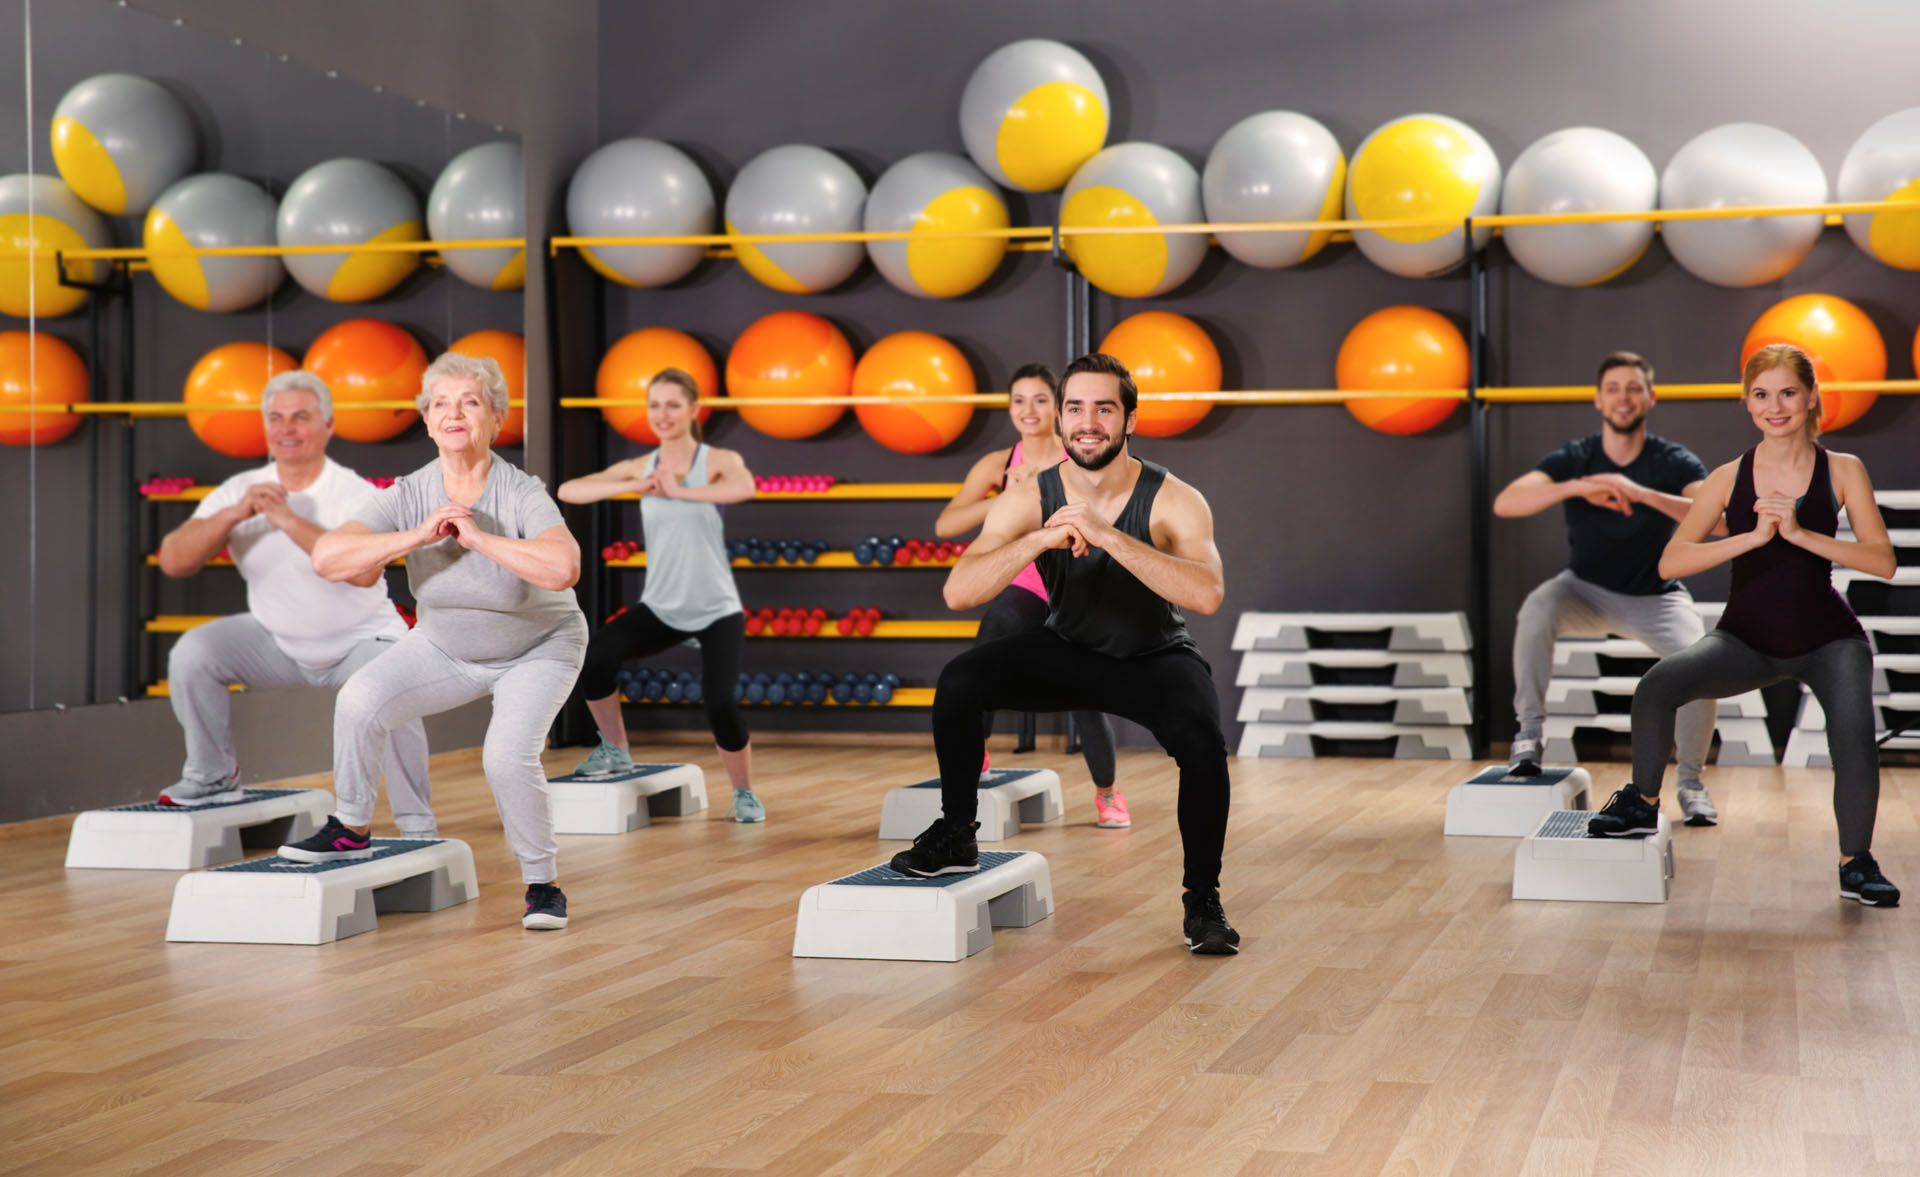 People of different ages training in gym